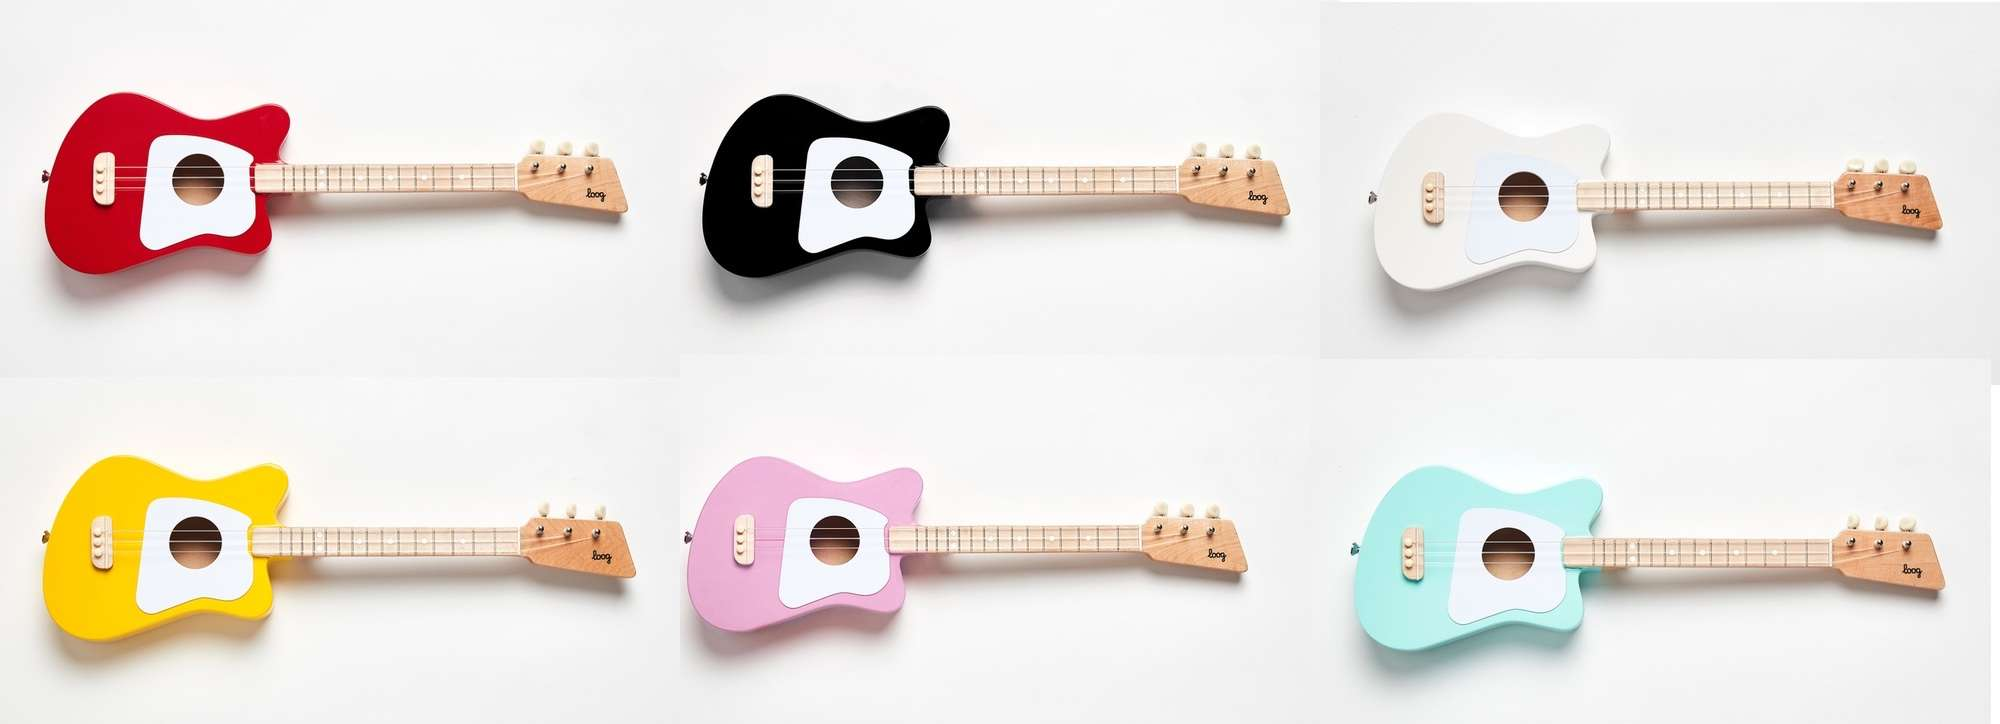 The mini is just about tthe cutest guitar ever made.